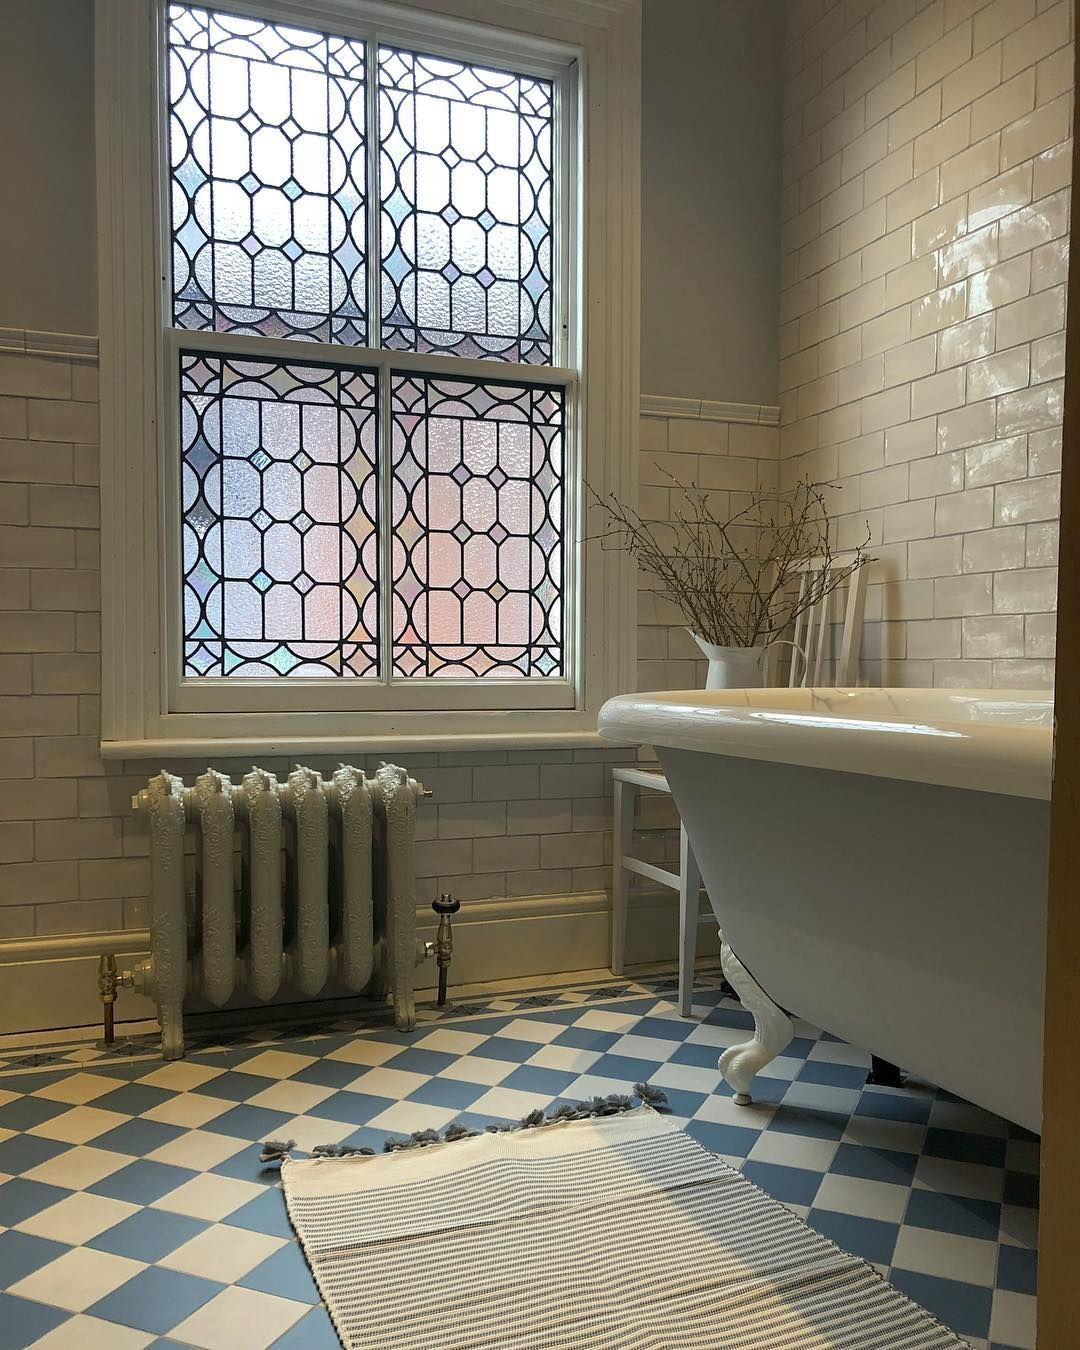 Beautiful Original Windows in Bathroom with Blue and White ...